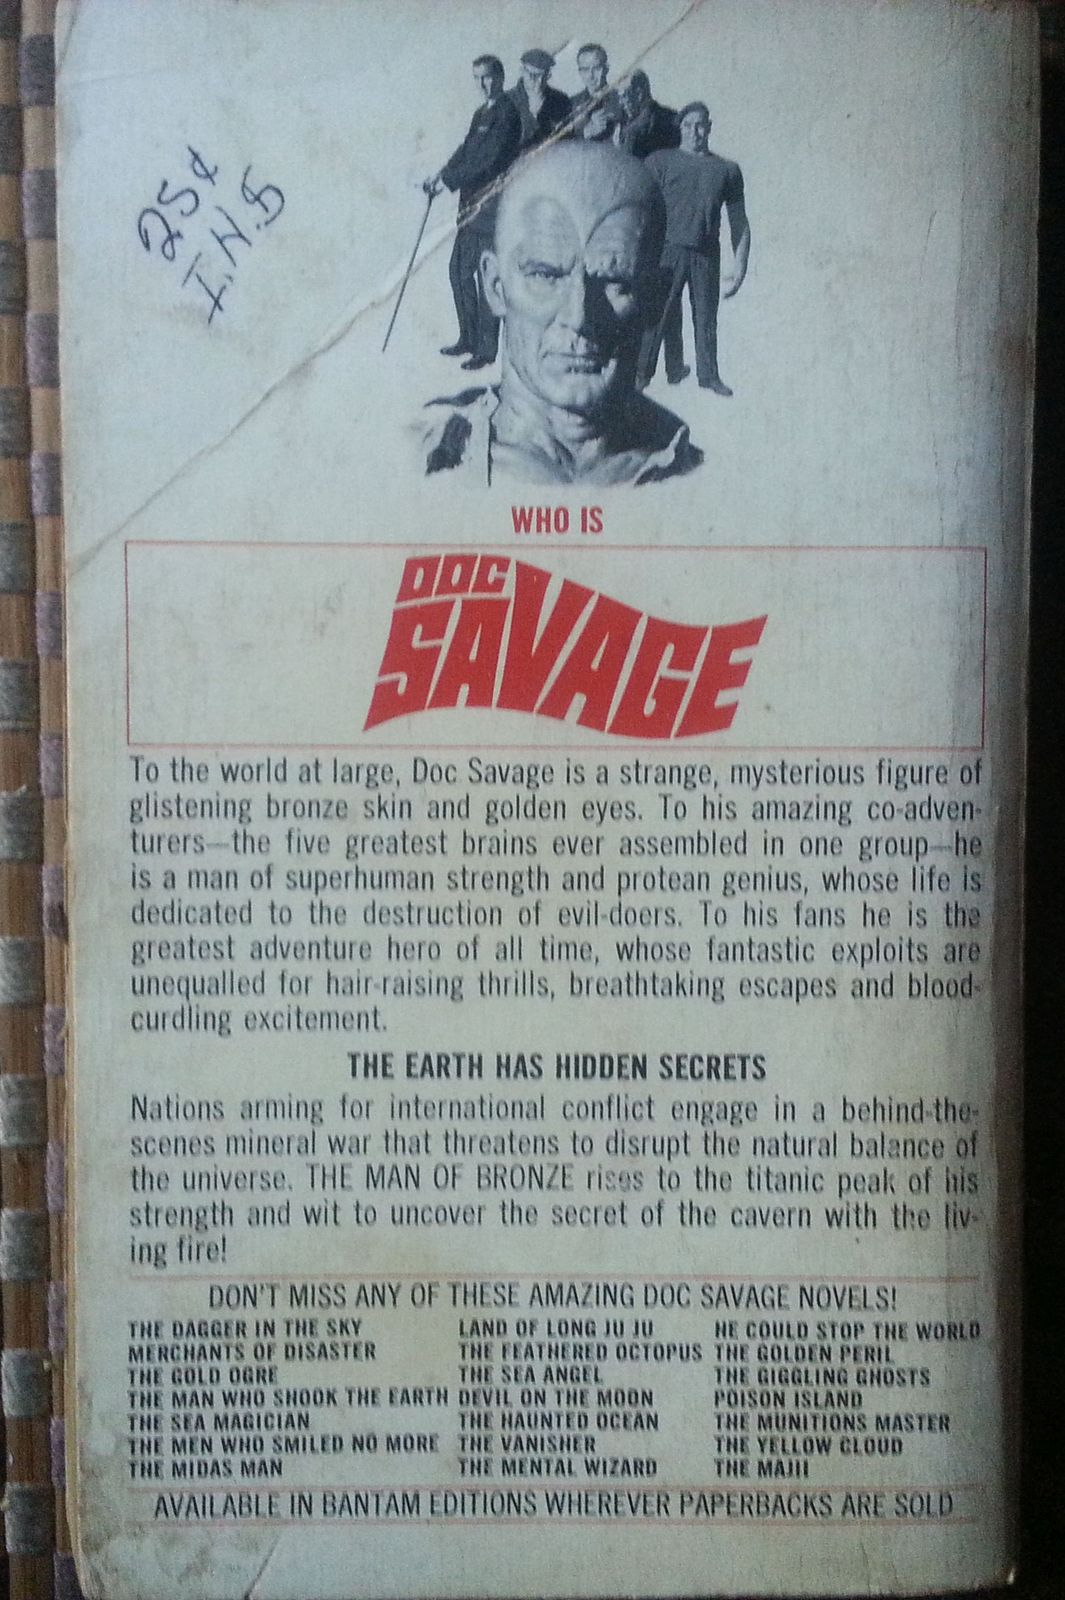 Doc Savage The Living Fire Menace by Kenneth Robeson 1971 PB